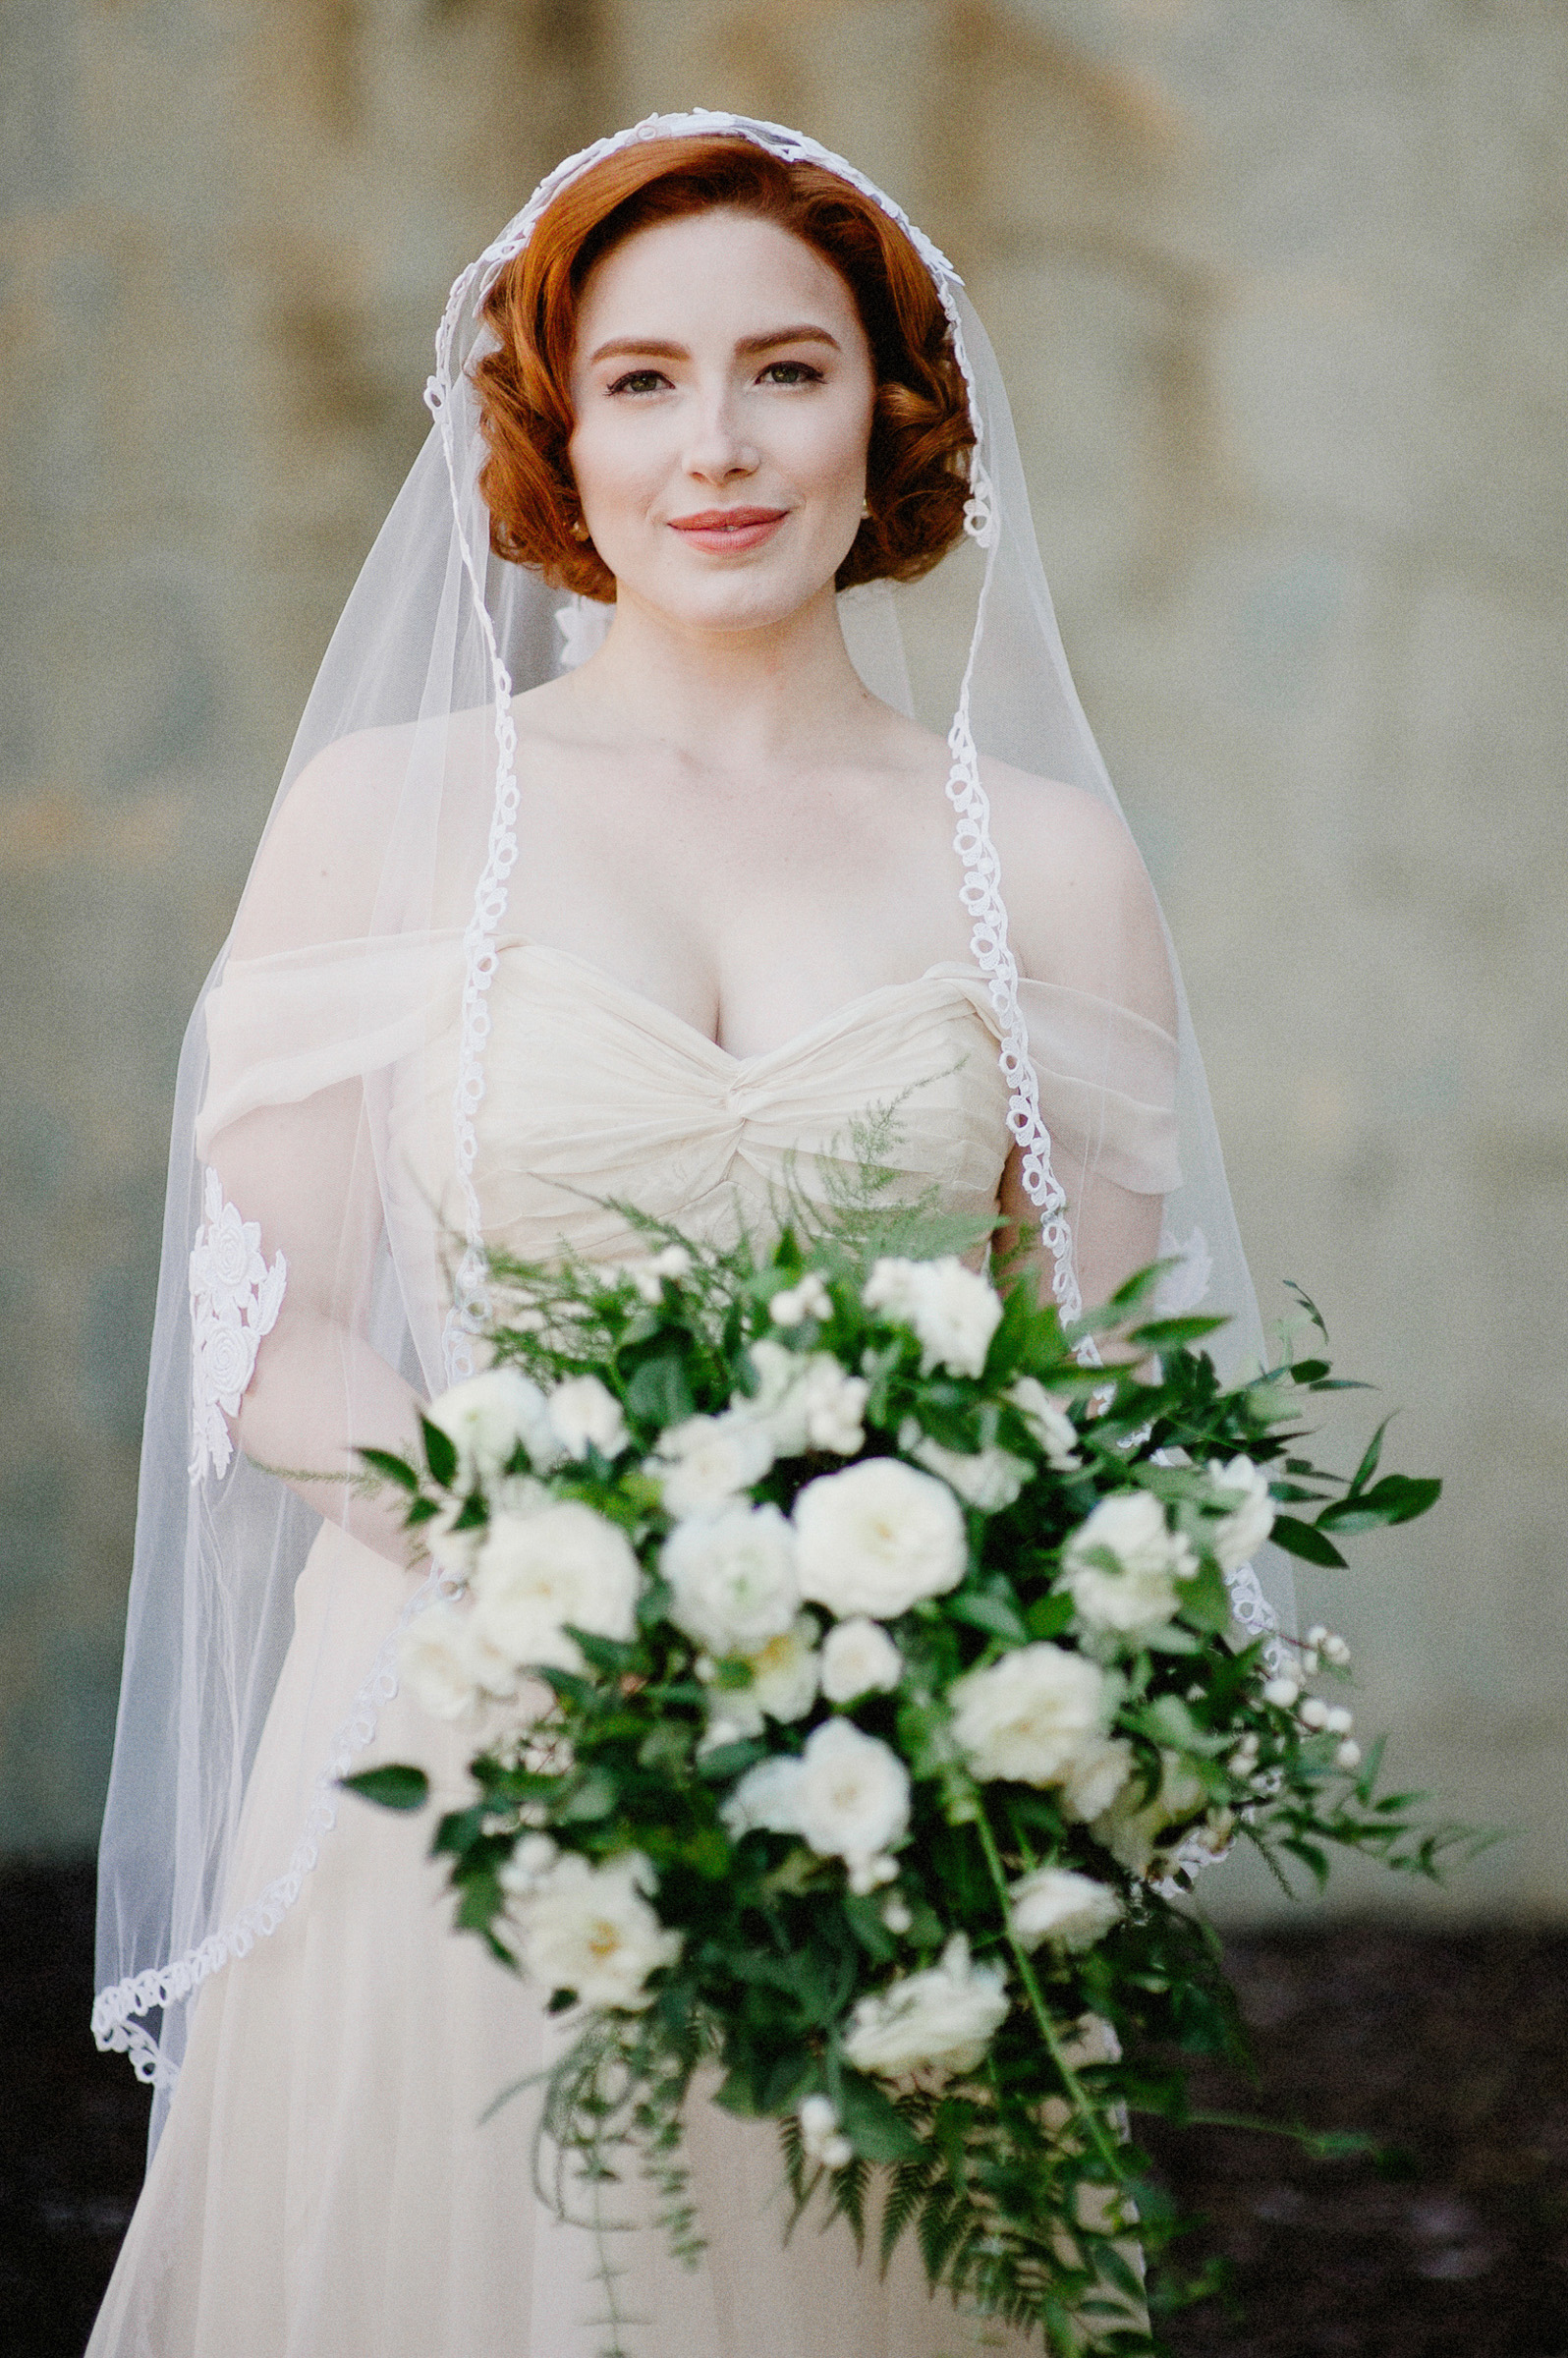 portrait-of-stunning-red-haired-bride-with-white-rose-bouquet-richard-israel-photography